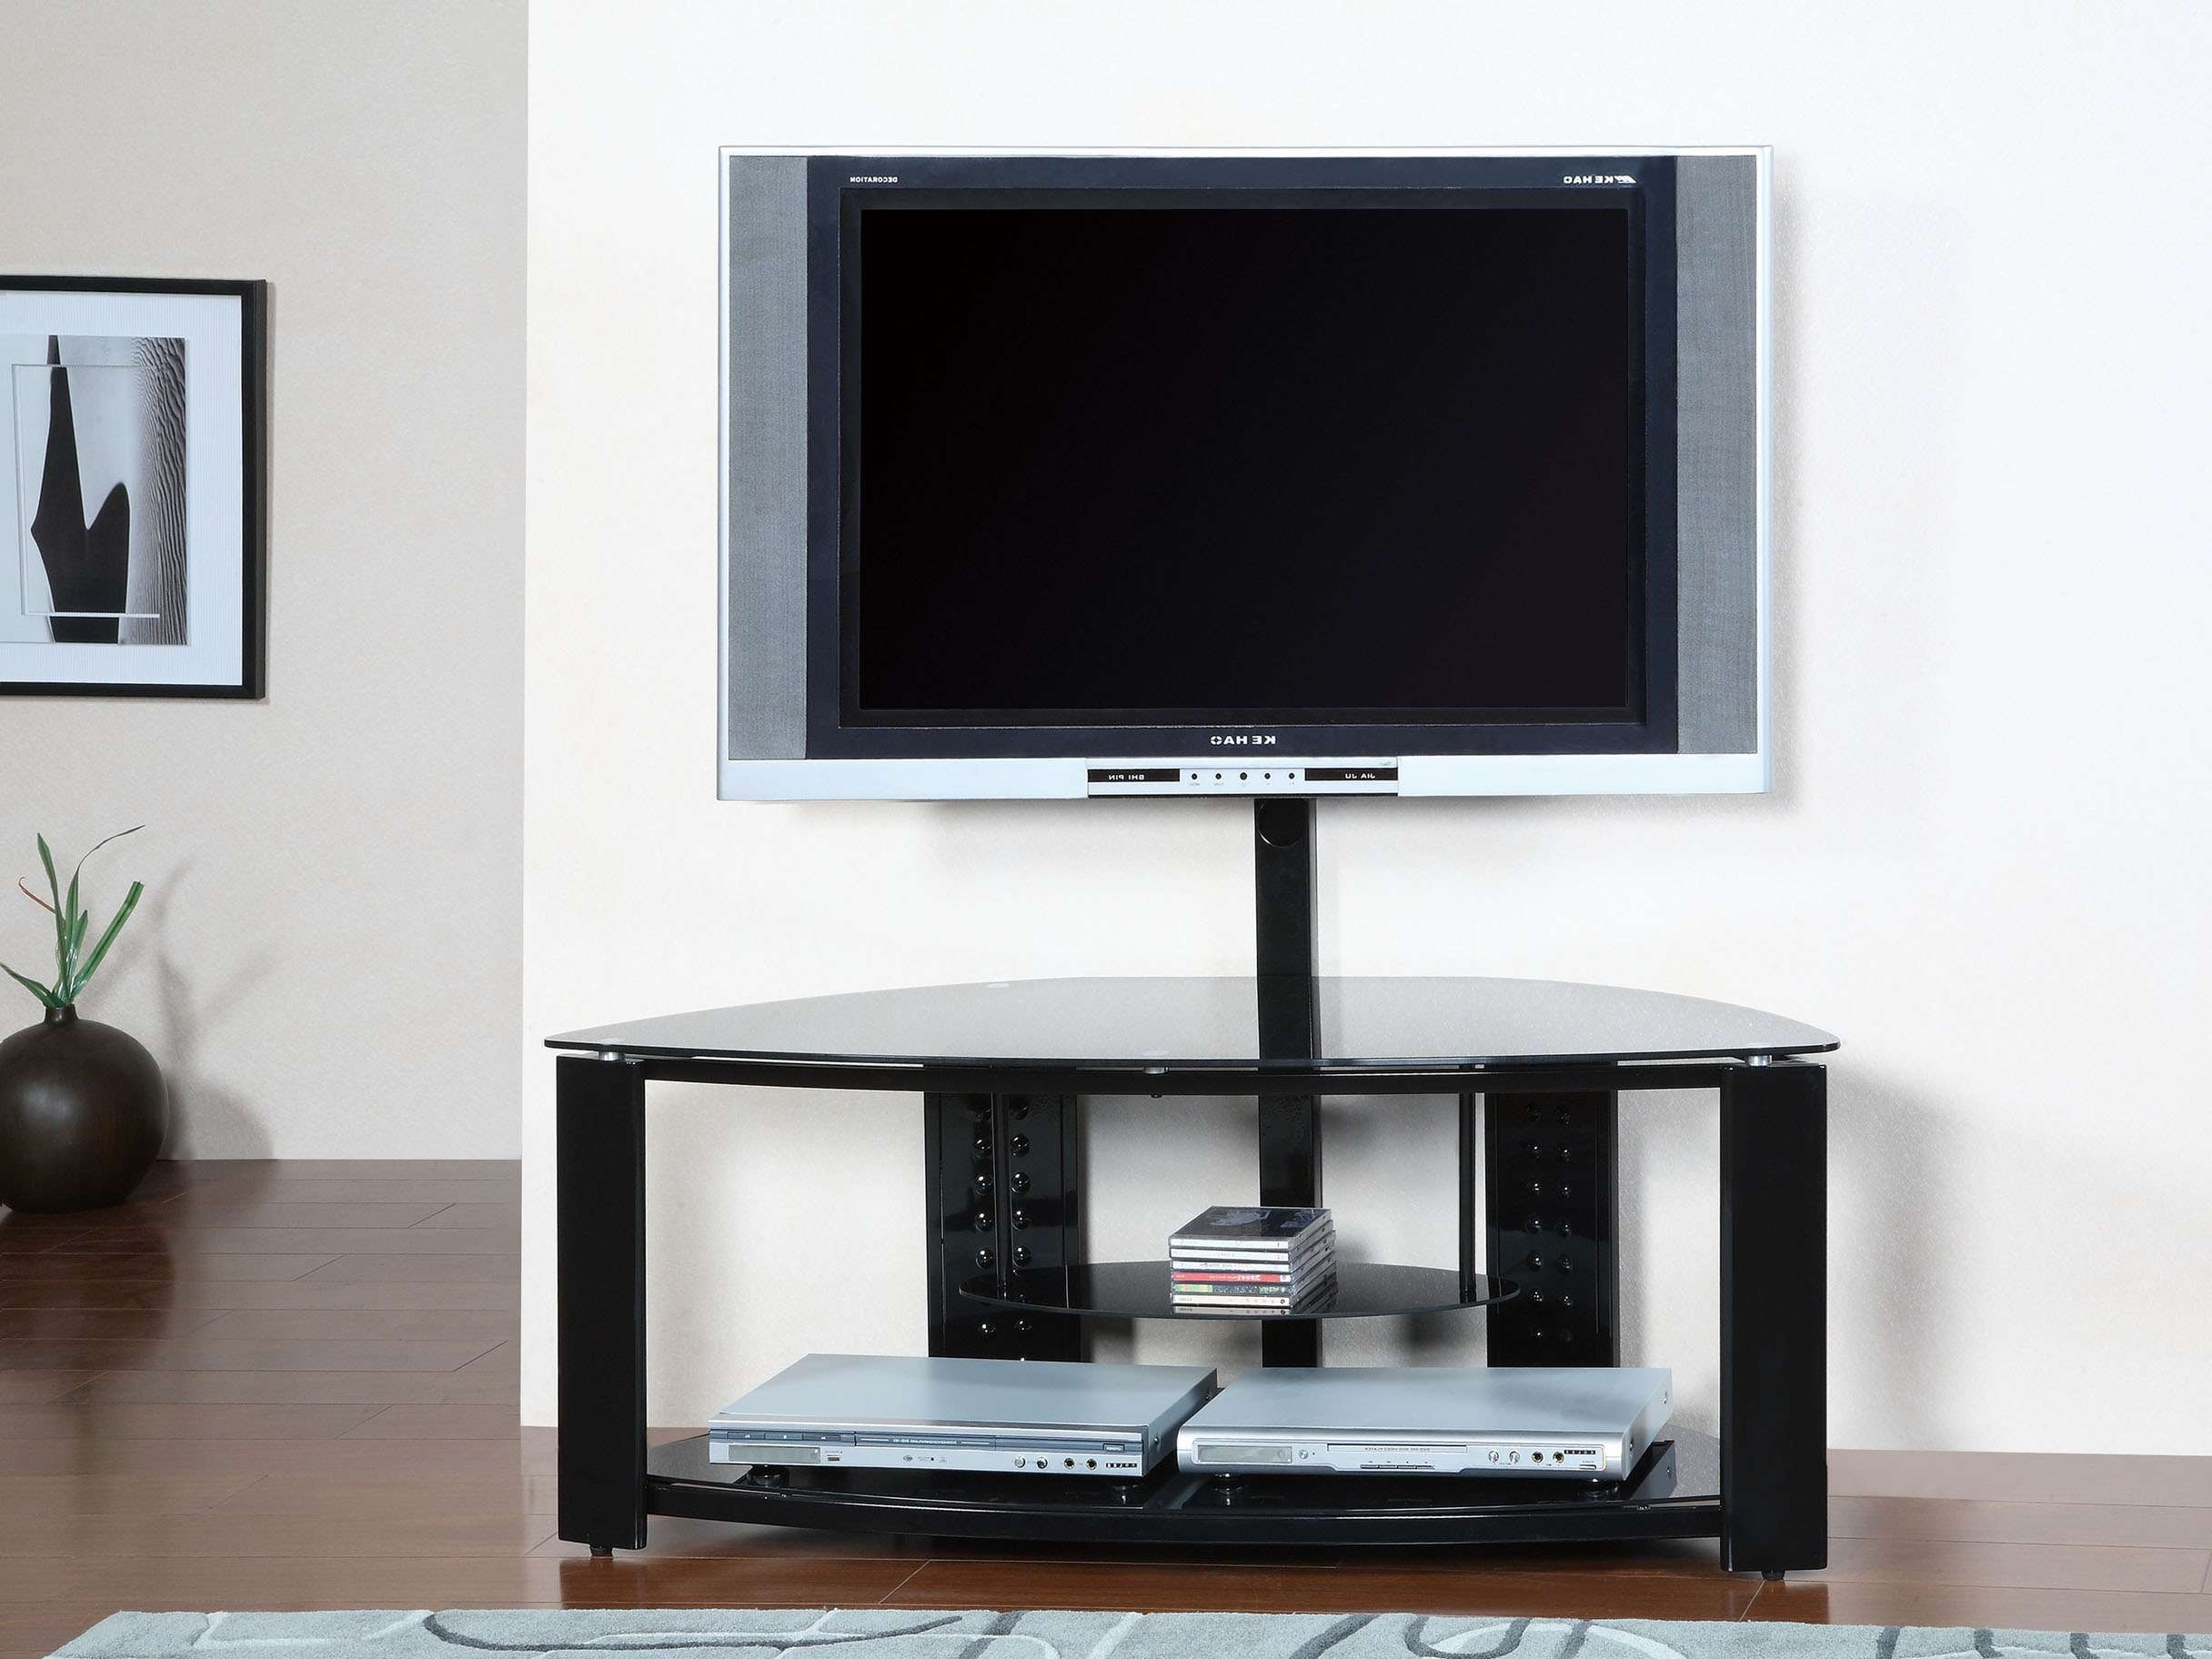 Glass Top Flat Screen Tv Cabinet With Black Iron Frame Of Gorgeous In Wood Tv Stands With Glass Top (View 10 of 15)